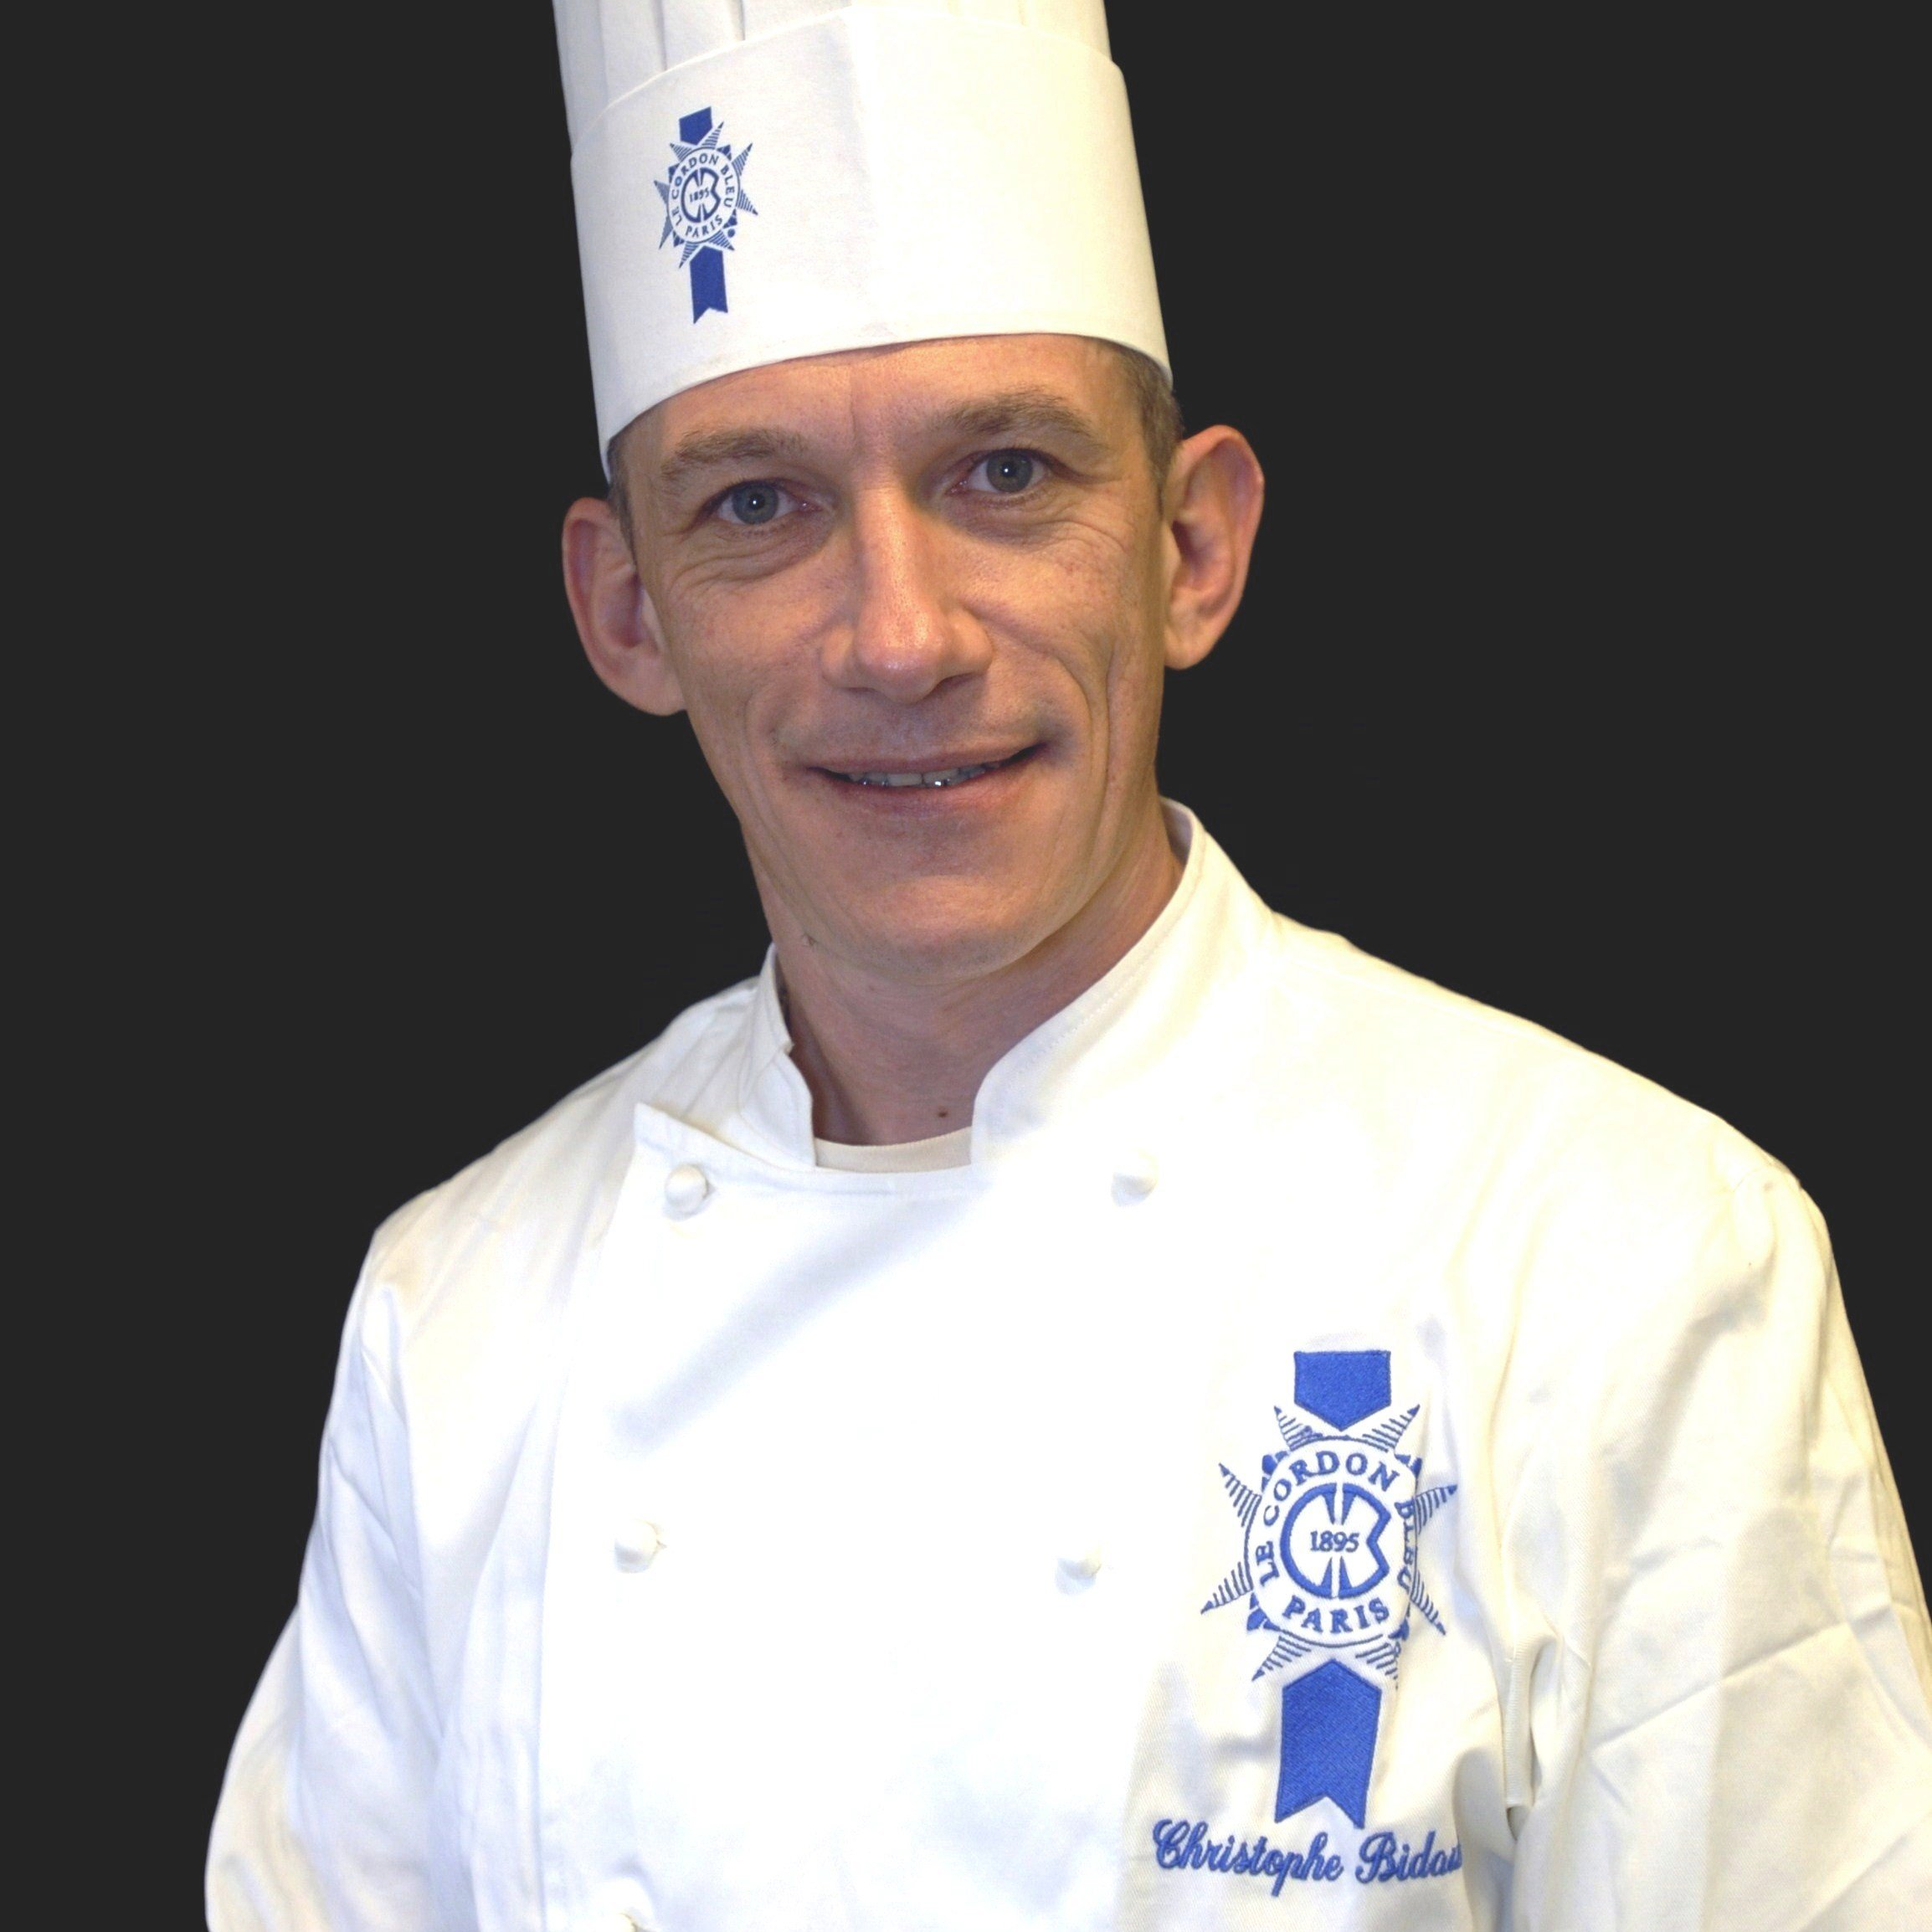 Chef Christophe Bidault - Master Chef at Le Cordon Bleu London